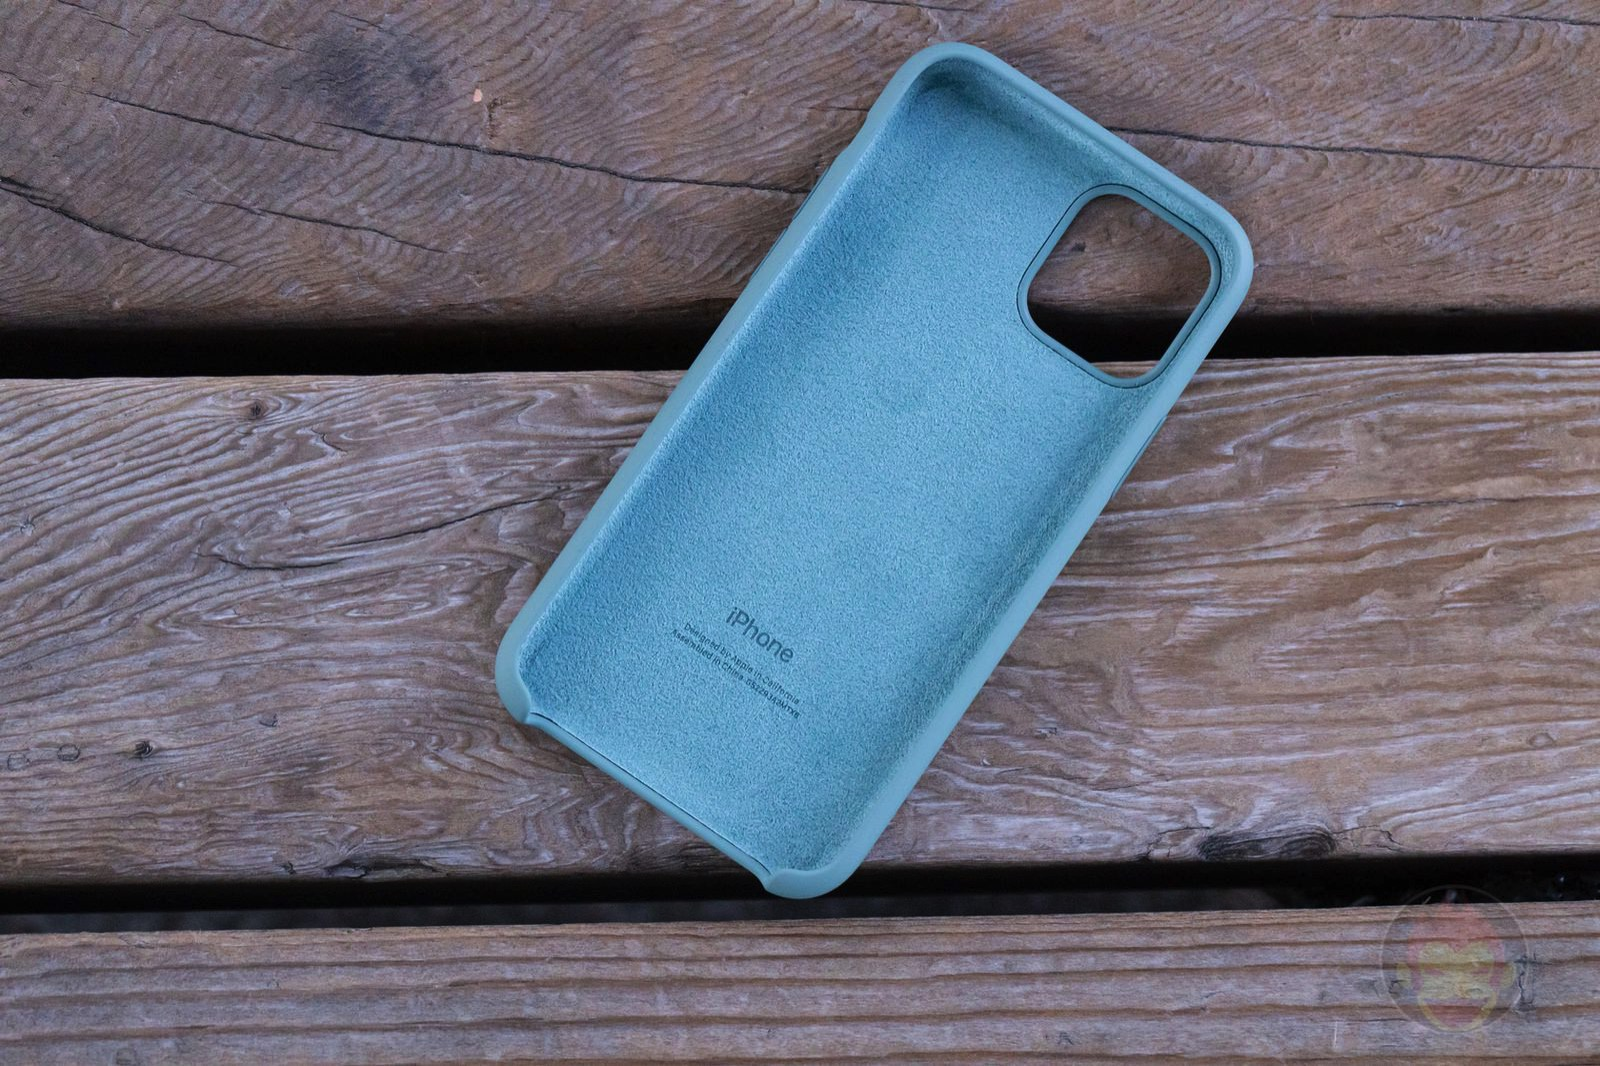 Apple Silicone Case for iPhone11Pro Review 02